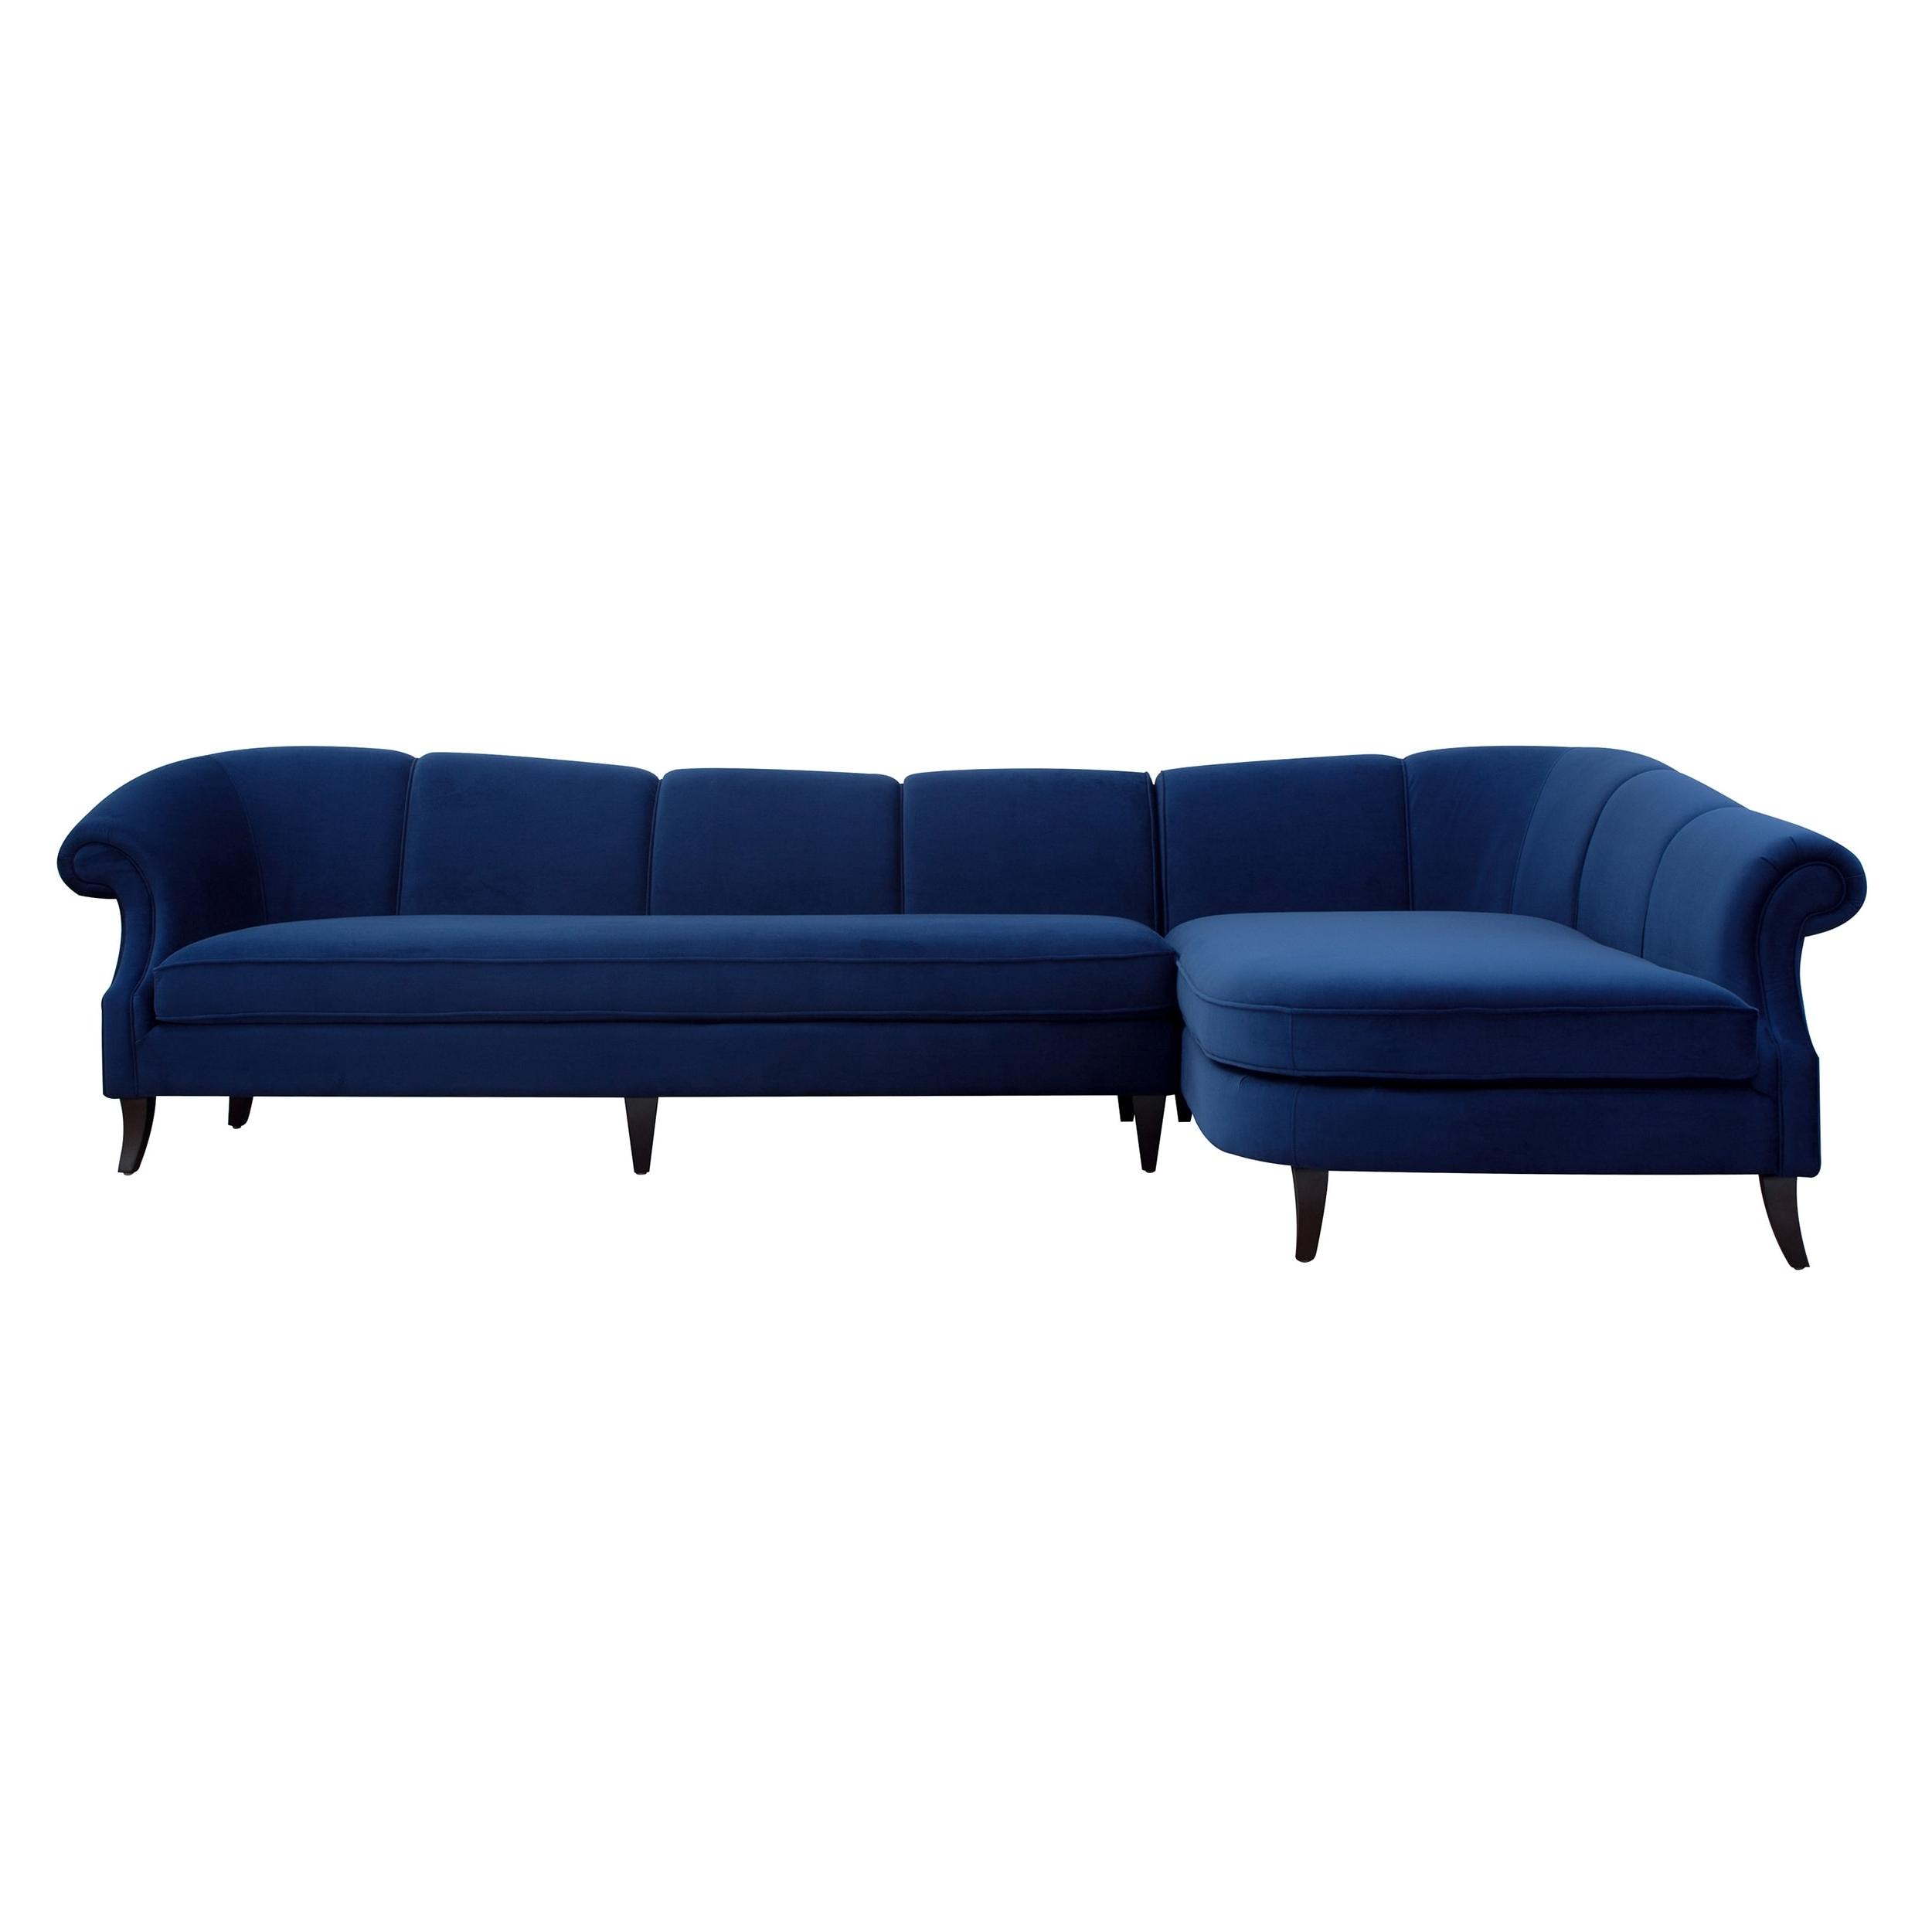 Well Known Sectional Sofas Under 700 With Regard To Jennifer Taylor Victoria Upholstered Sectional Sofa – Free (View 20 of 20)